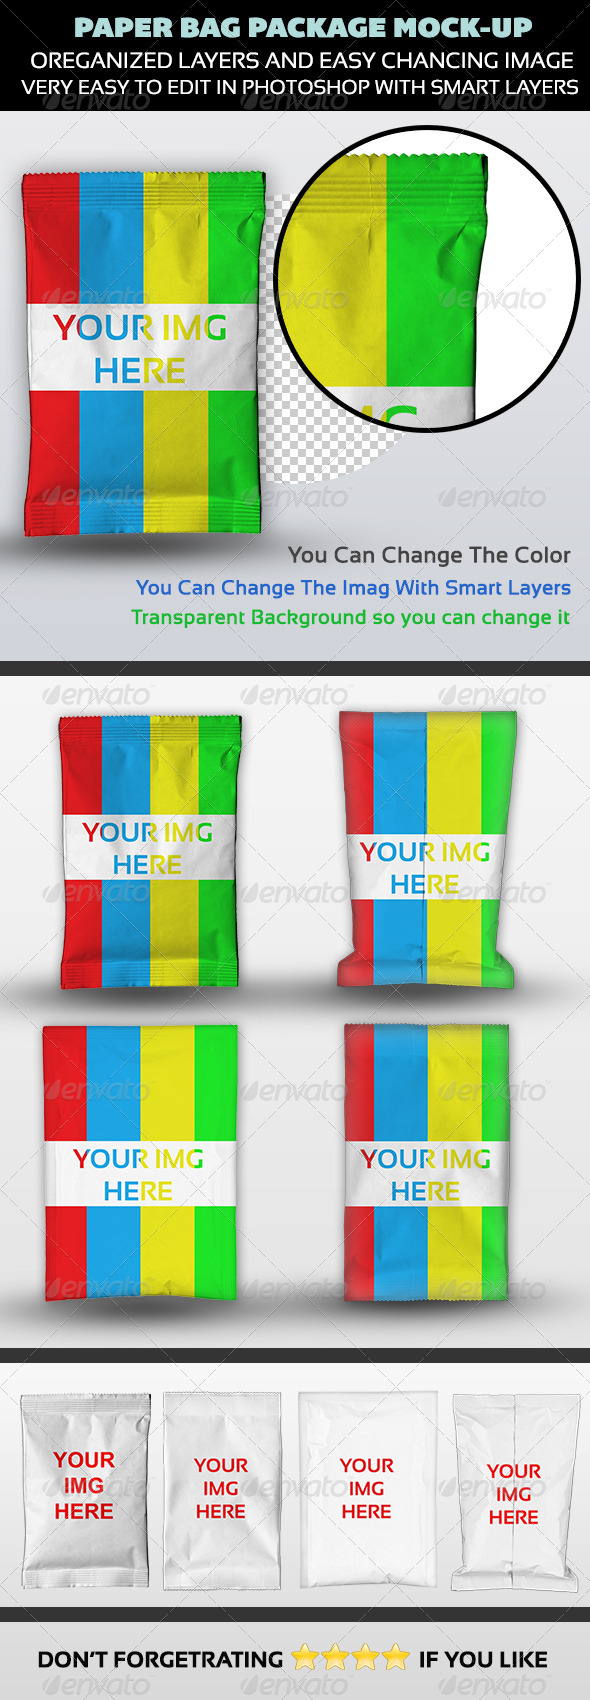 GraphicRiver Paper Bag Package Mock-up 5211835